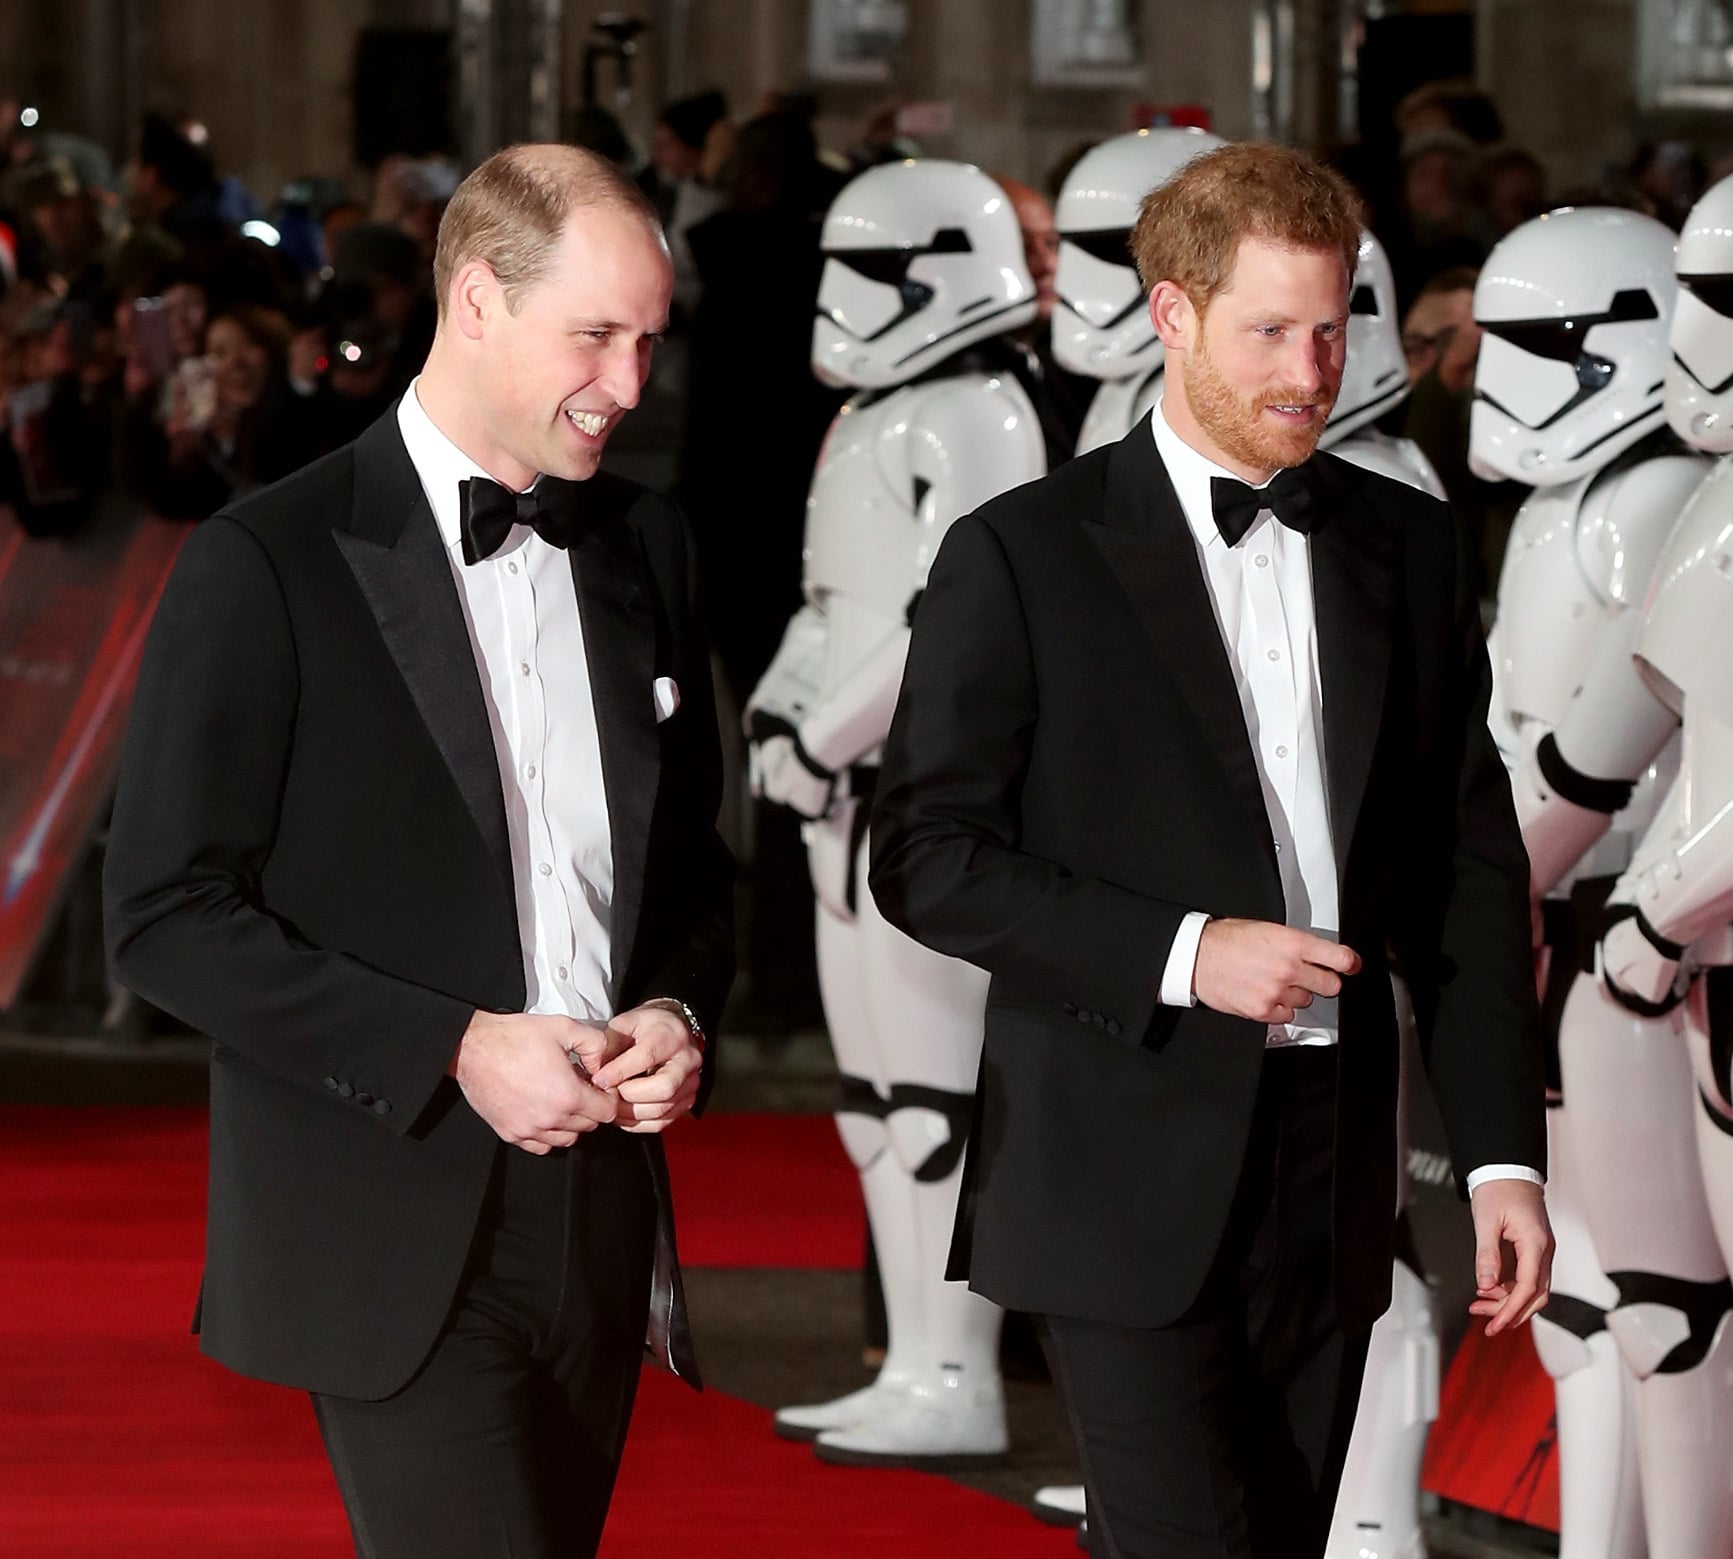 LONDON, ENGLAND - DECEMBER 12:  Prince William, Duke of Cambridge and Prince Harry attend the European Premiere of 'Star Wars: The Last Jedi' at Royal Albert Hall on December 12, 2017 in London, England.  (Photo by Neil Mockford/FilmMagic)